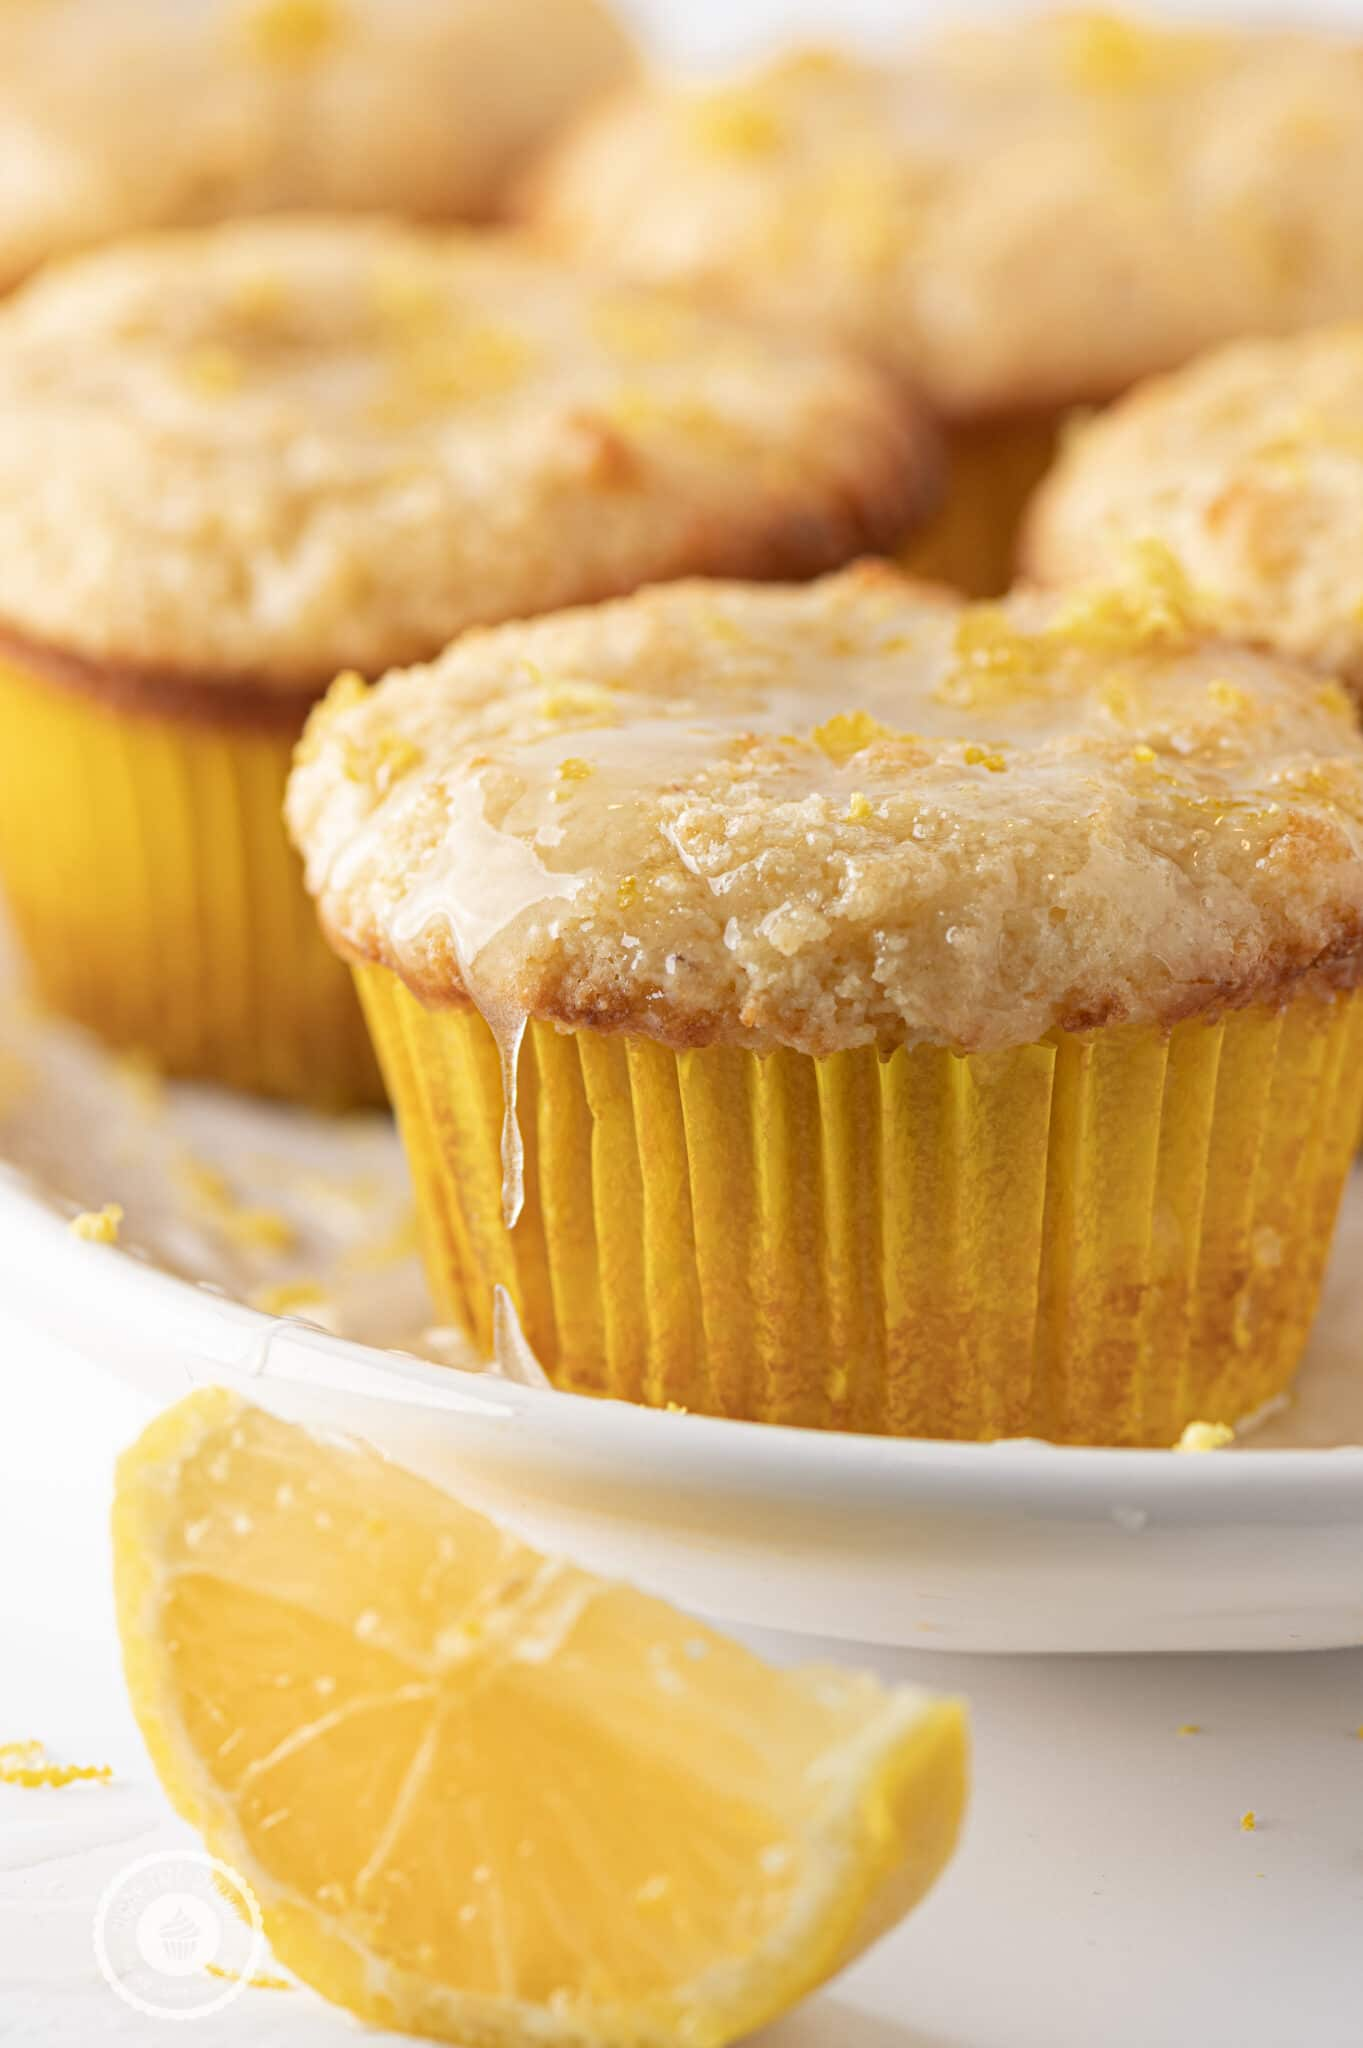 Lemon muffin in a yellow muffin liner, dripping with sticky glaze and topped with fresh lemon rind.  Muffins are stacked in behind slightly out of focus.